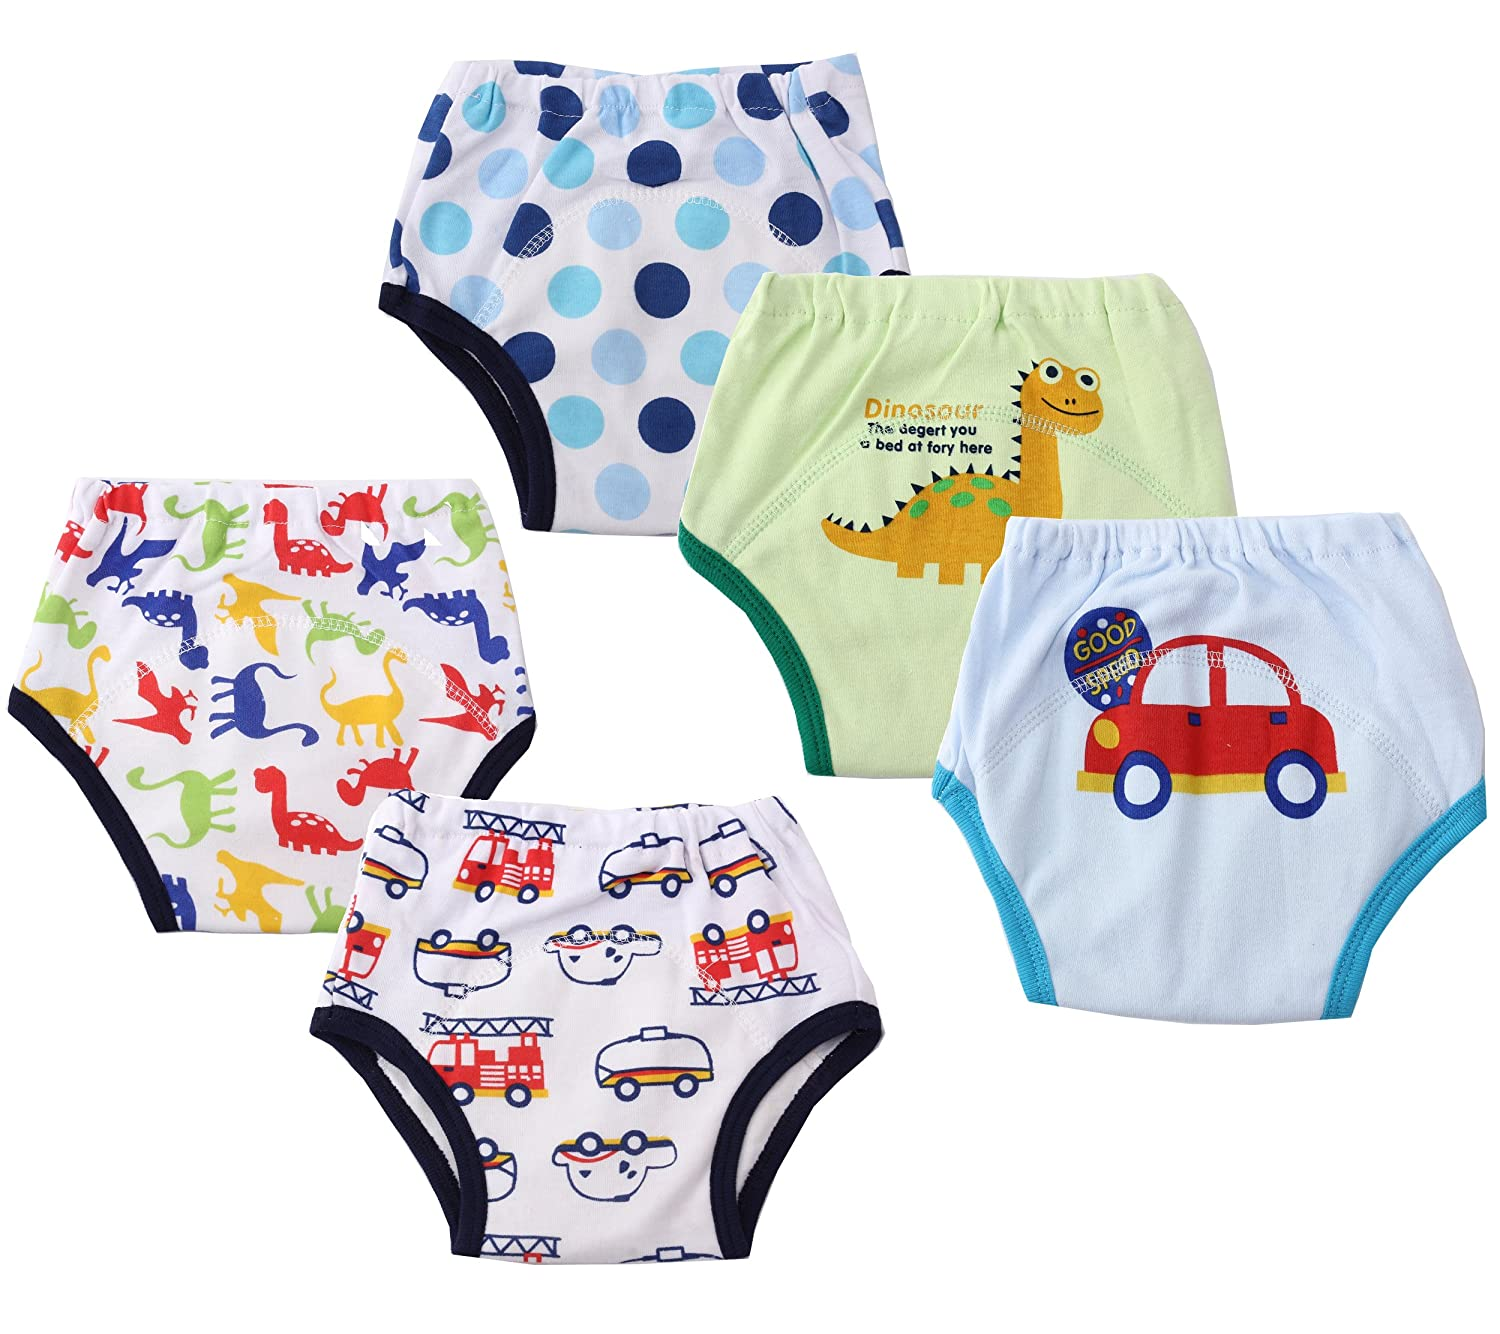 Dimore Baby Toddler 5 Pack Assortment Cotton Training Pants 1170932046